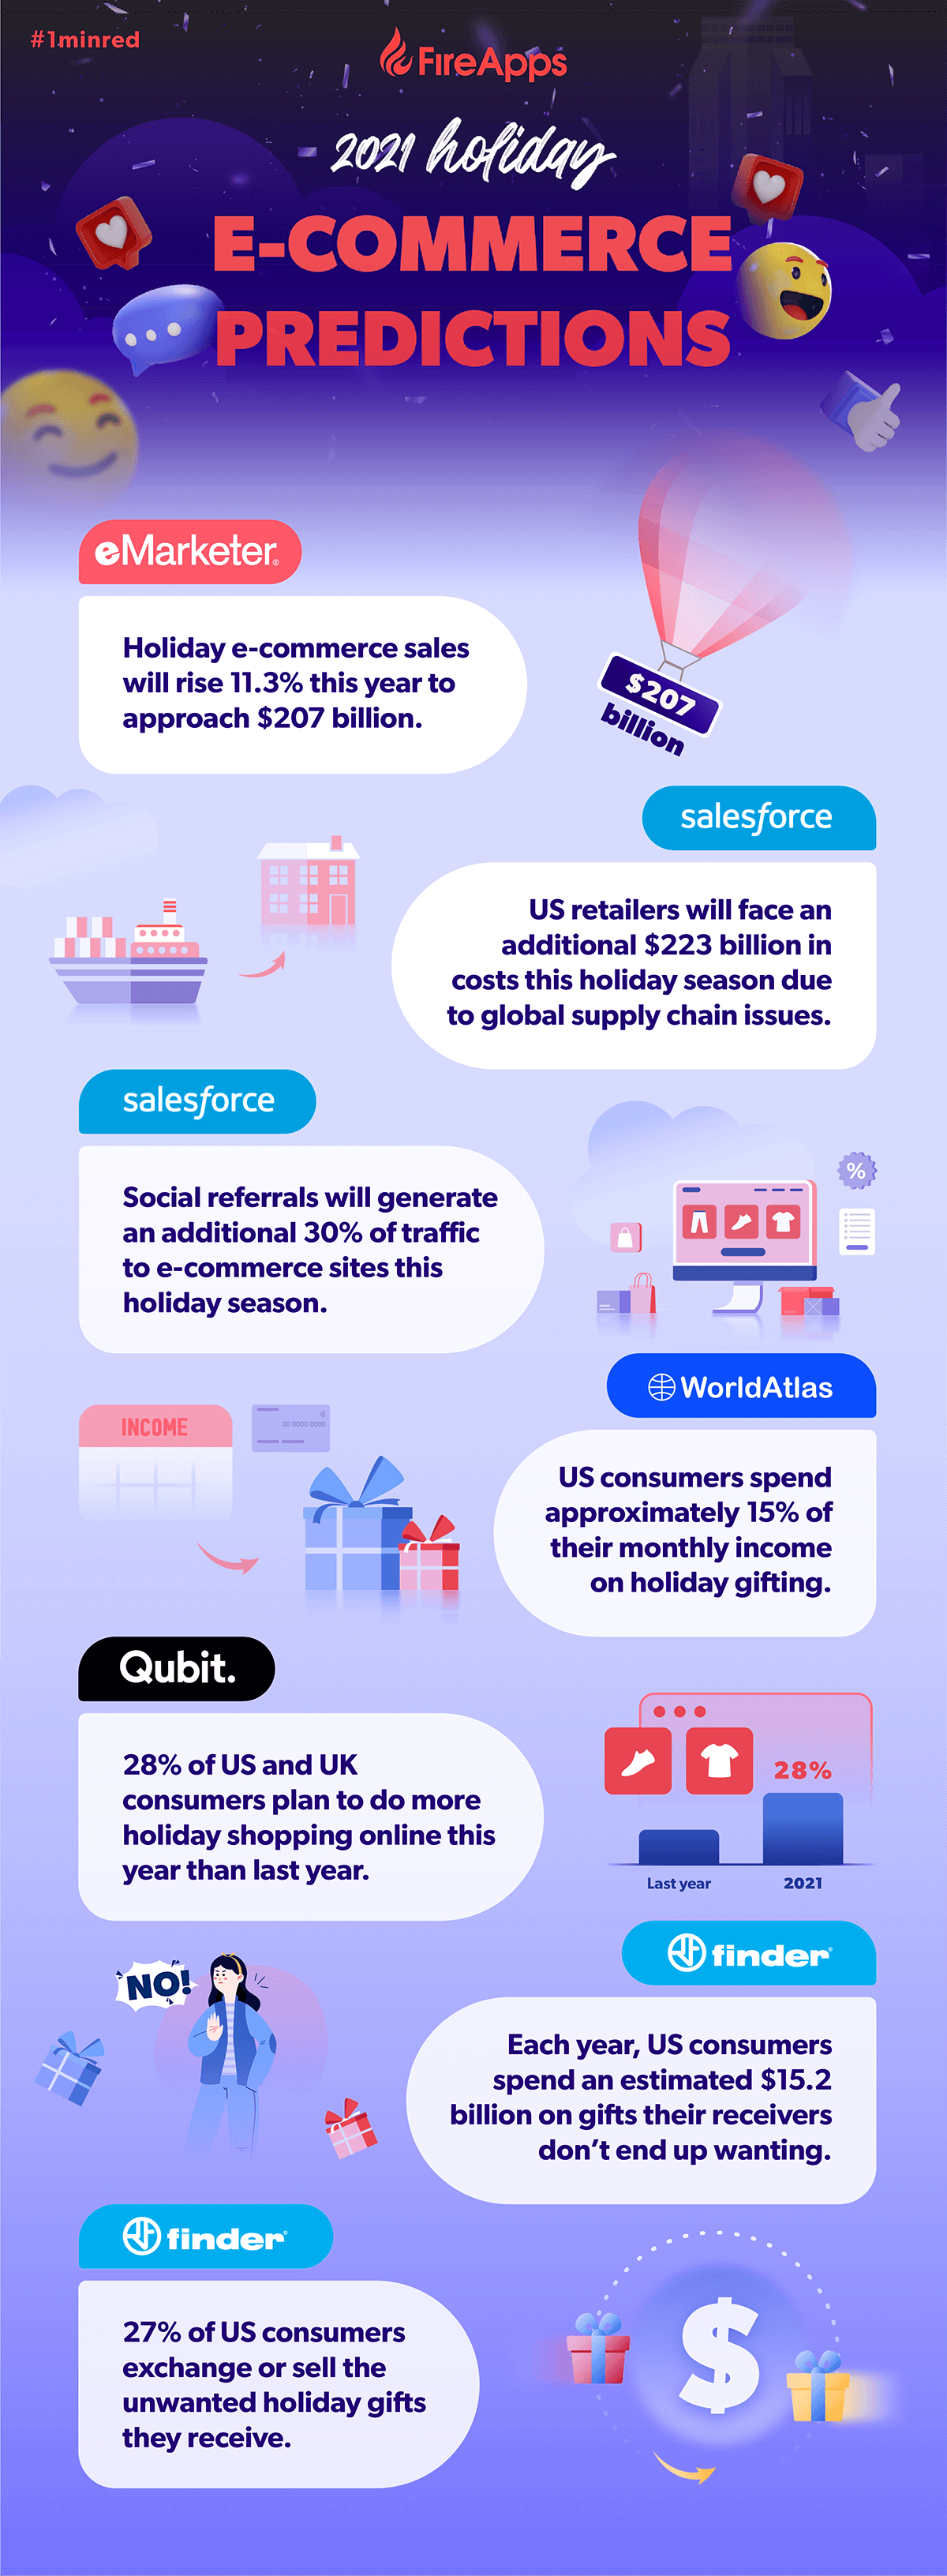 2021-holiday-e-commerce-predictions